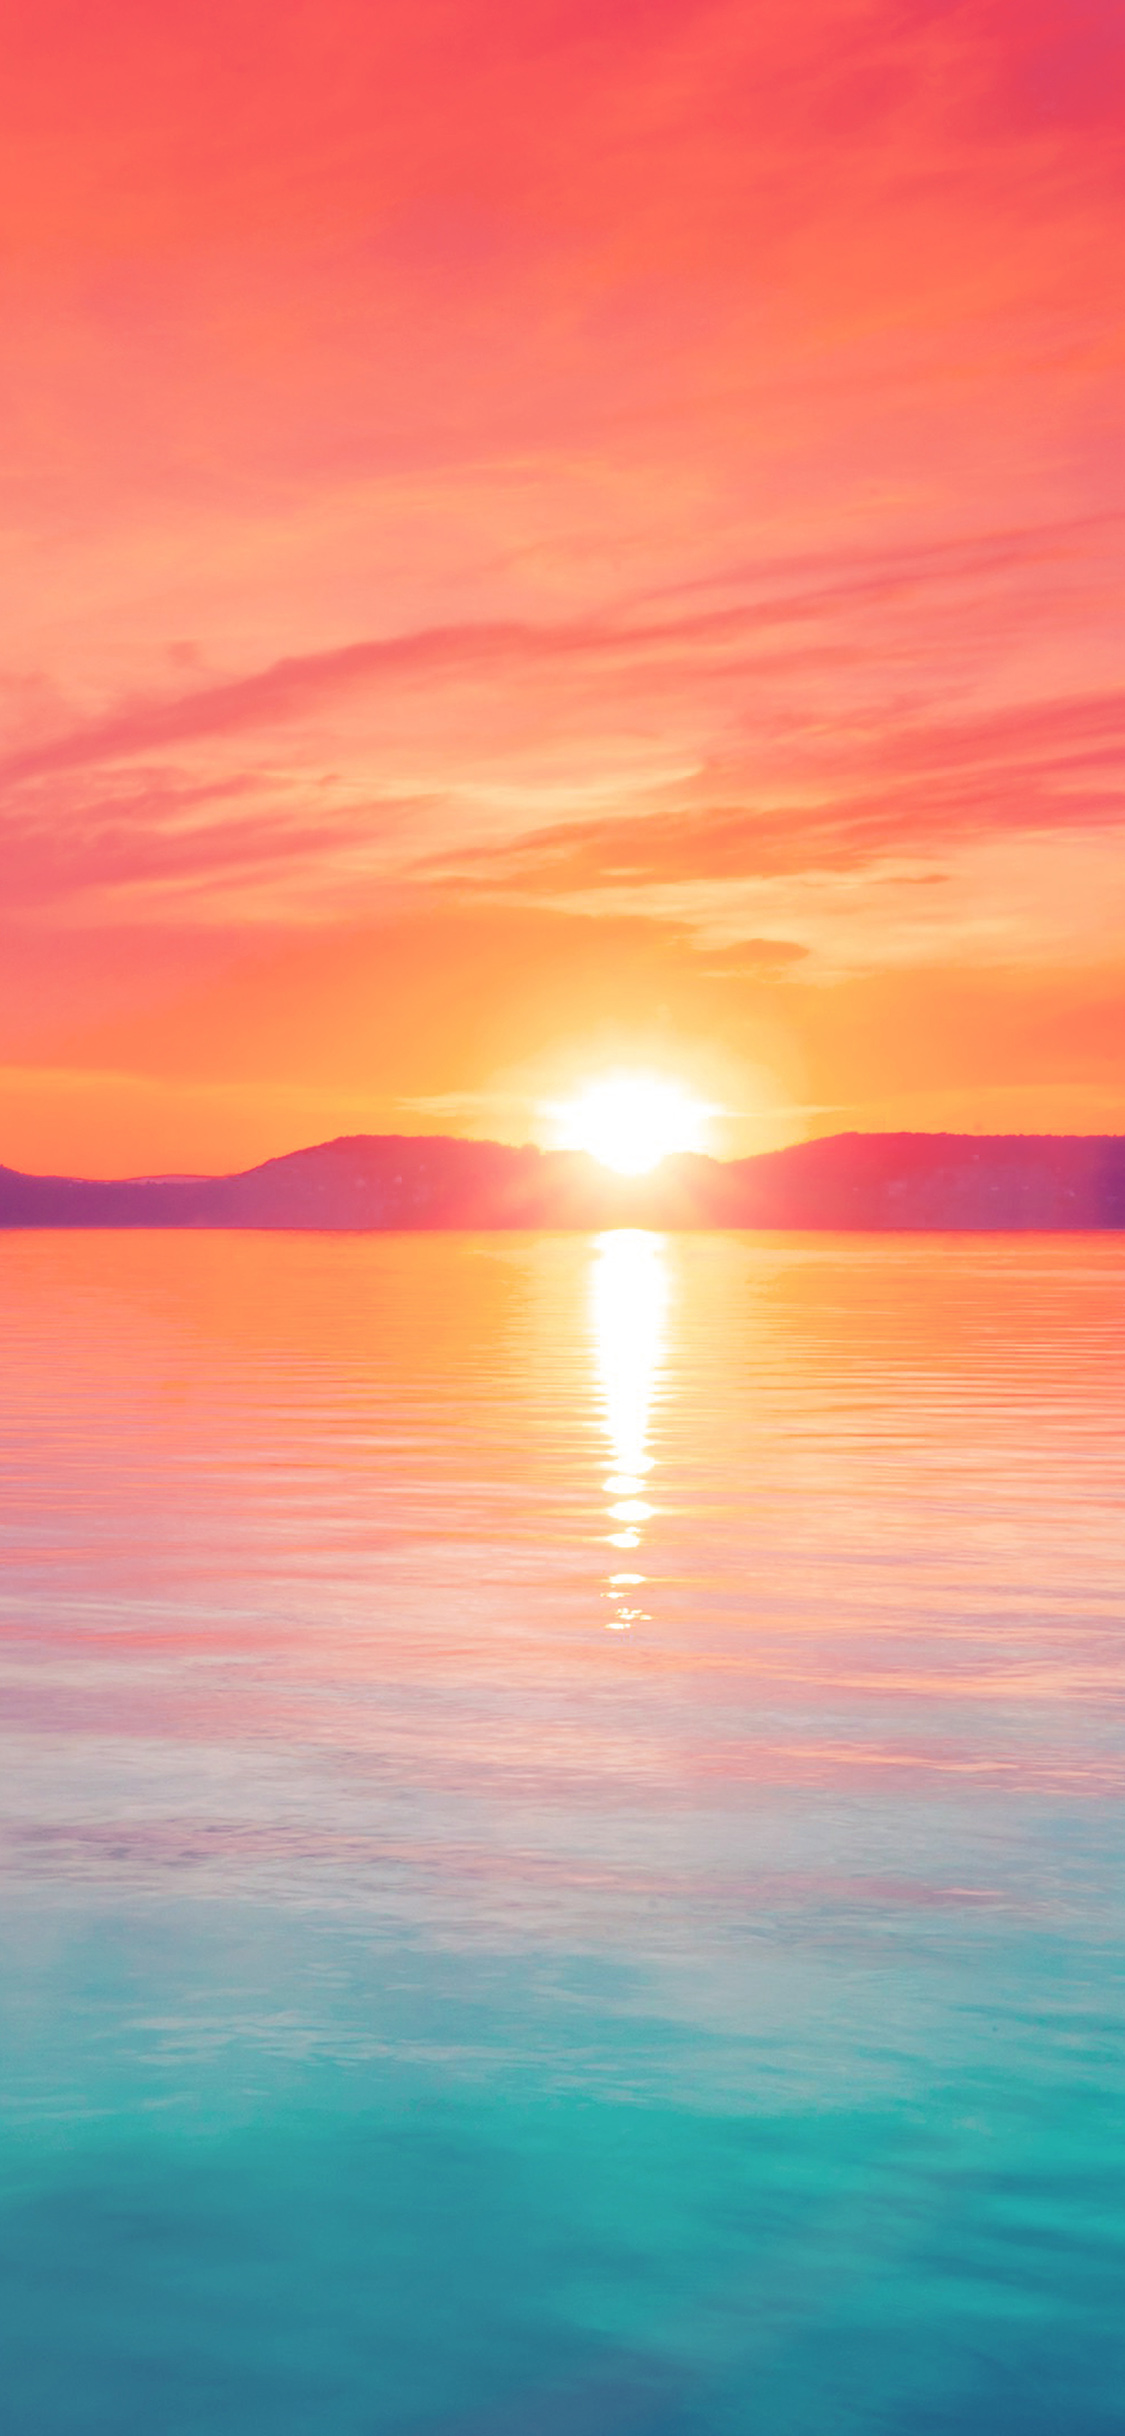 Mq41 Sunset Night Lake Water Sky Red Flare Papers Co